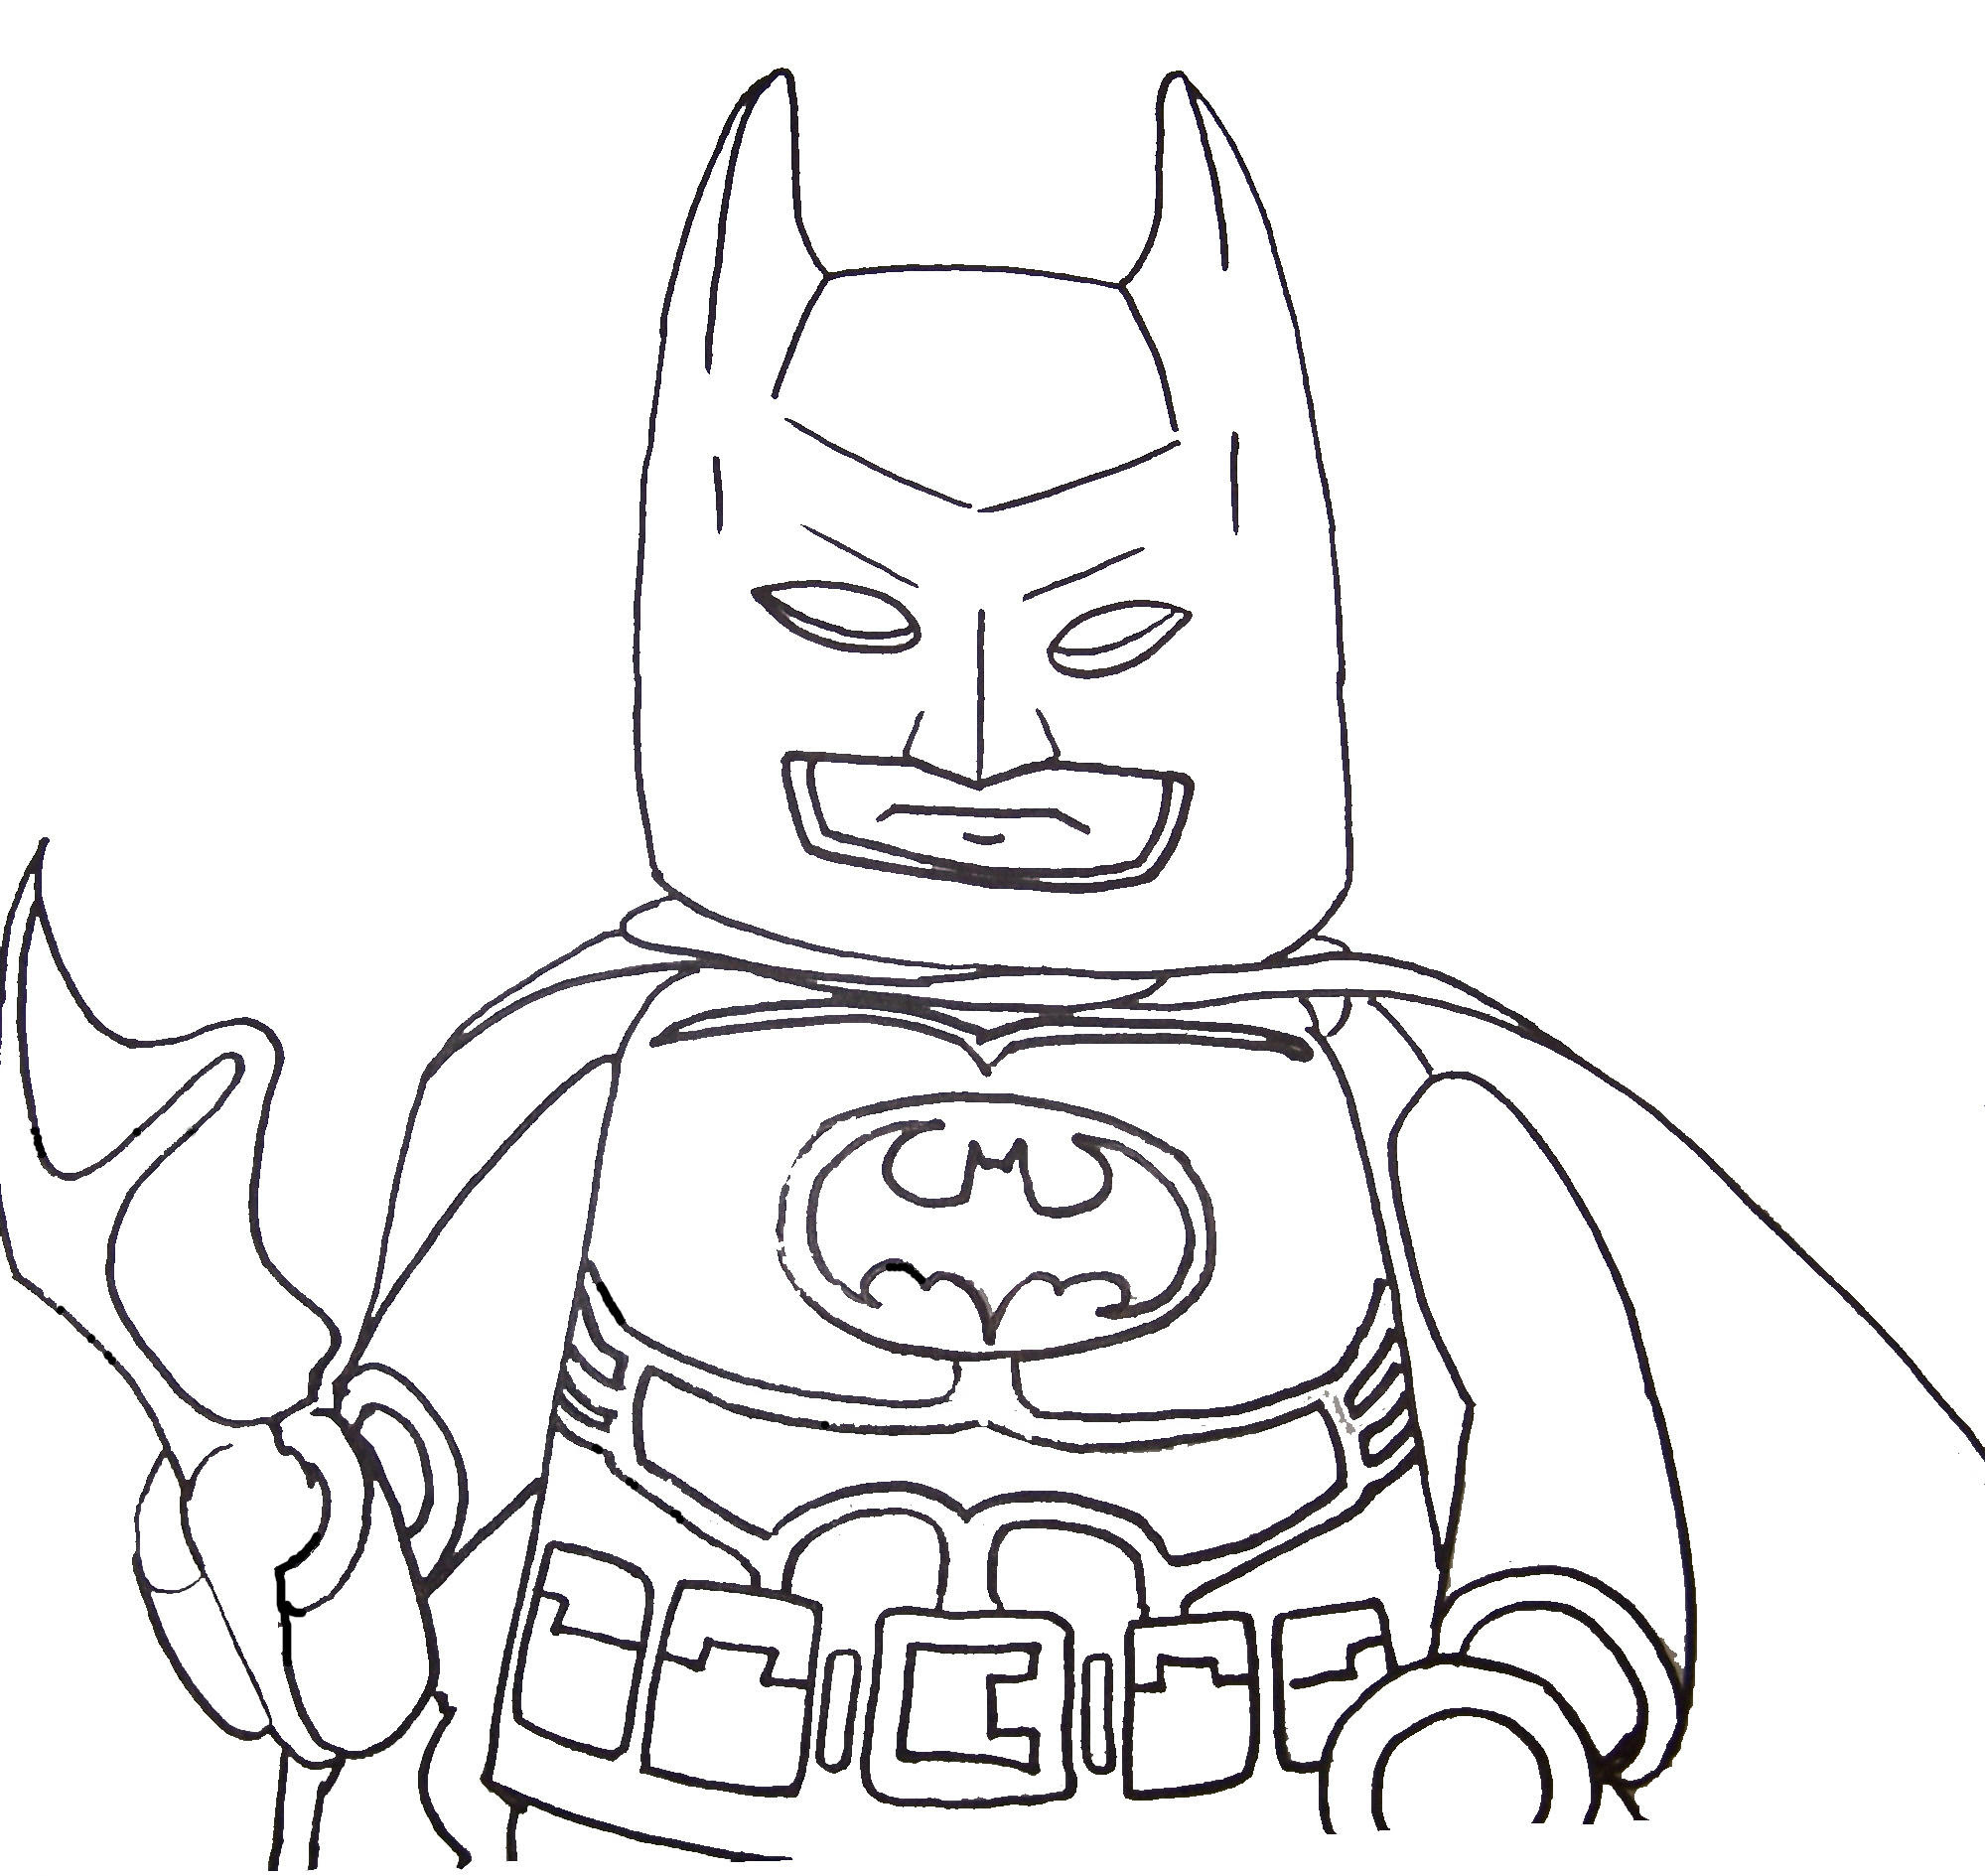 Kid Batman Coloring Page Image to print